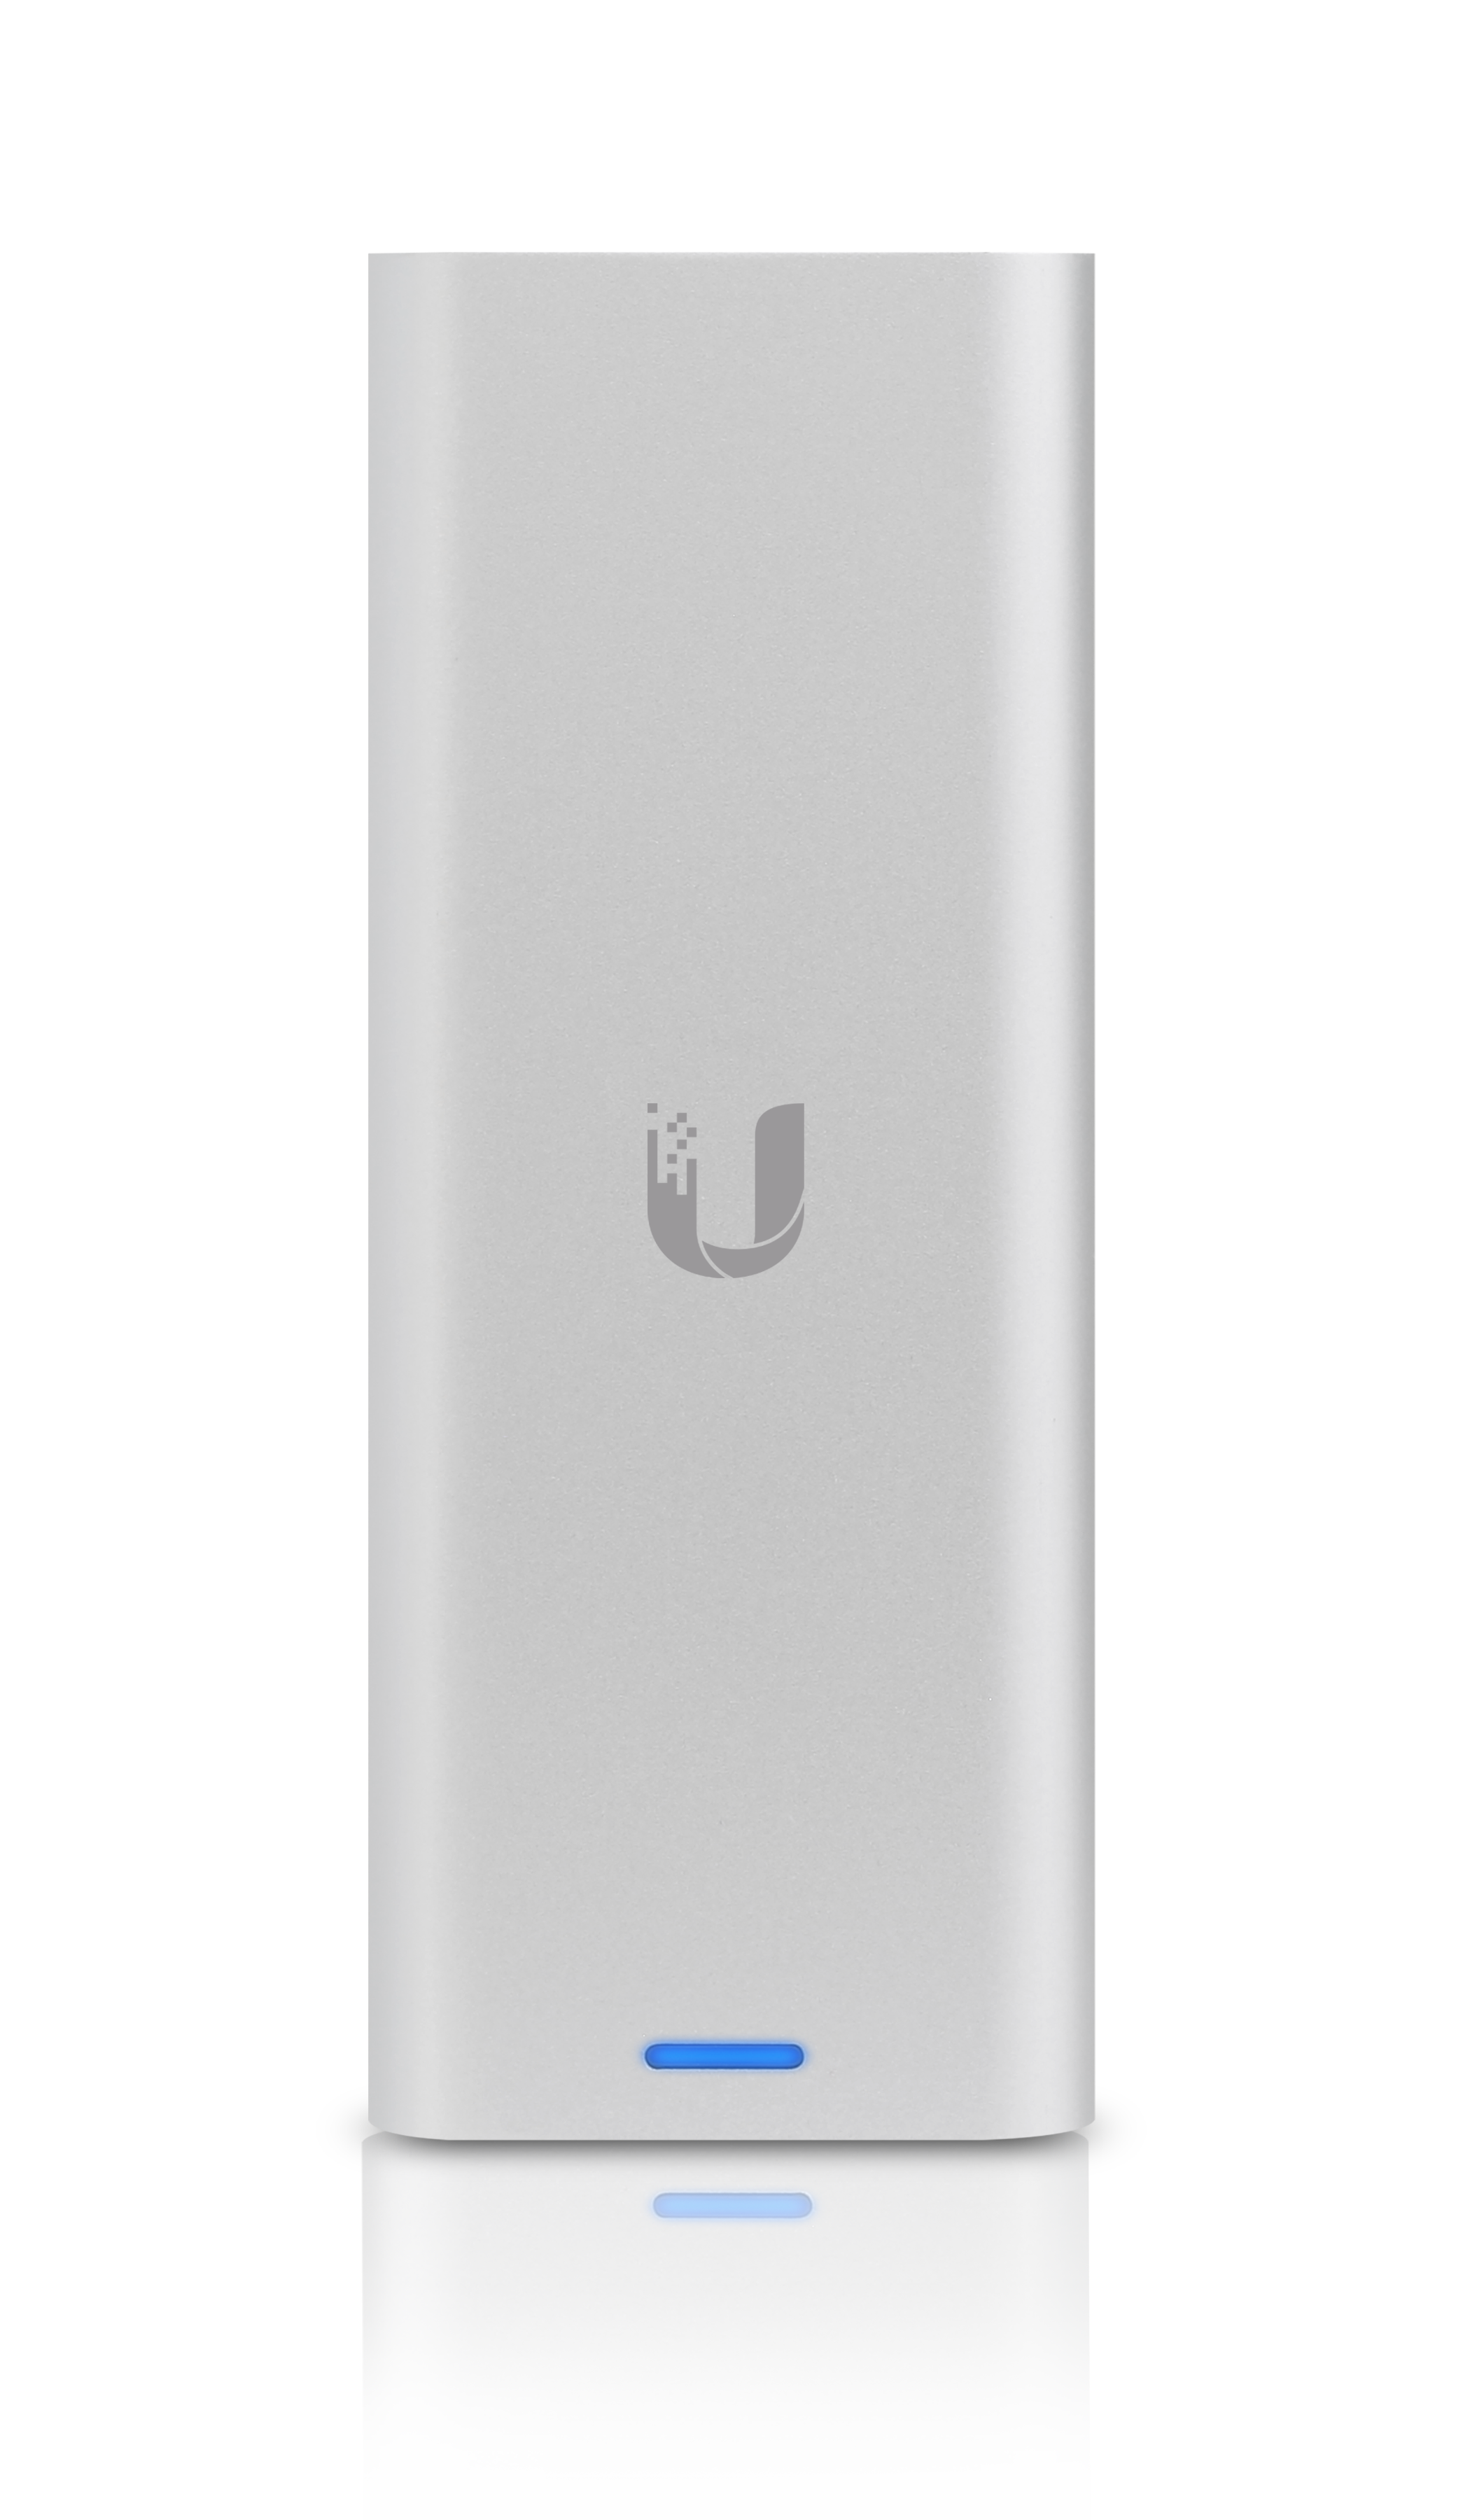 Ubiquiti UniFi Gen2 Cloud Key Controller